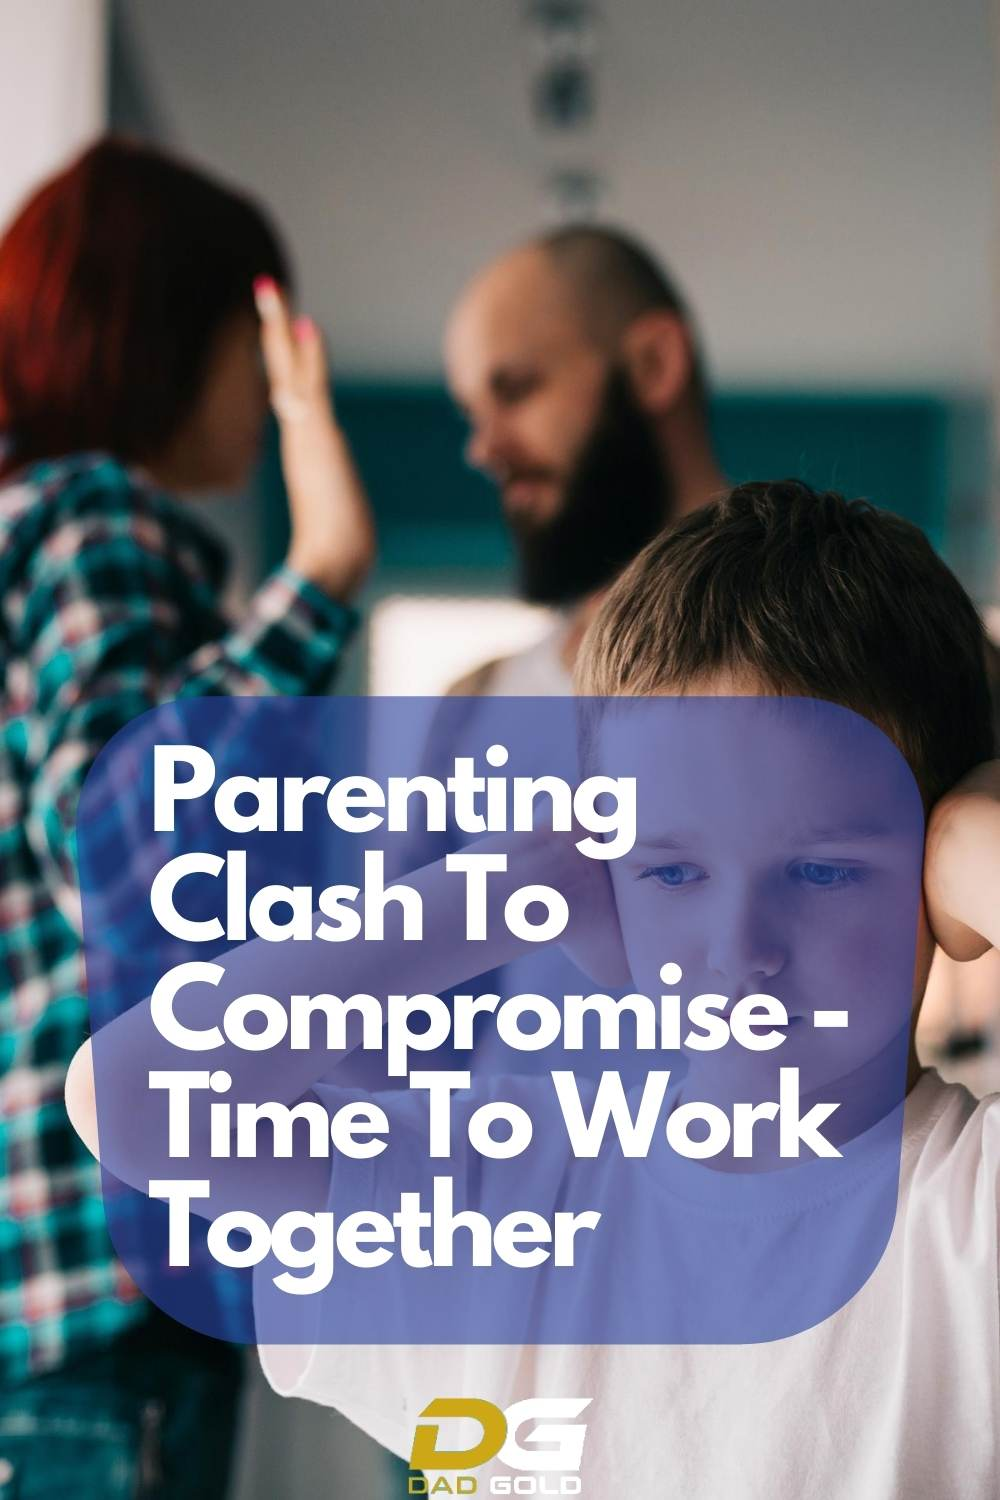 Parenting Clash To Compromise - Time To Work Together dadgold parenting tips